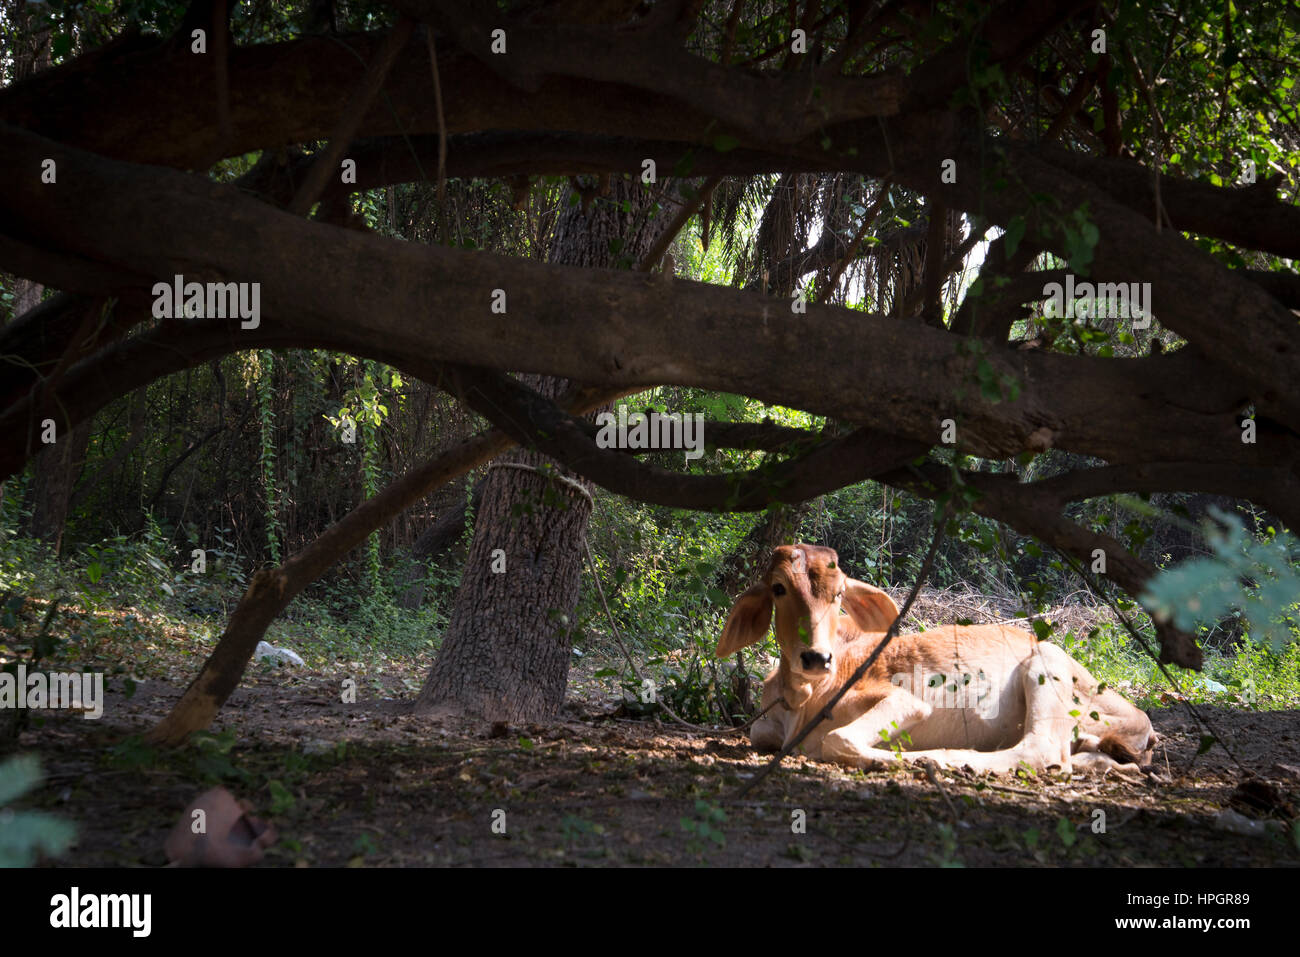 Calf lying in a forest glade, India. Stock Photo